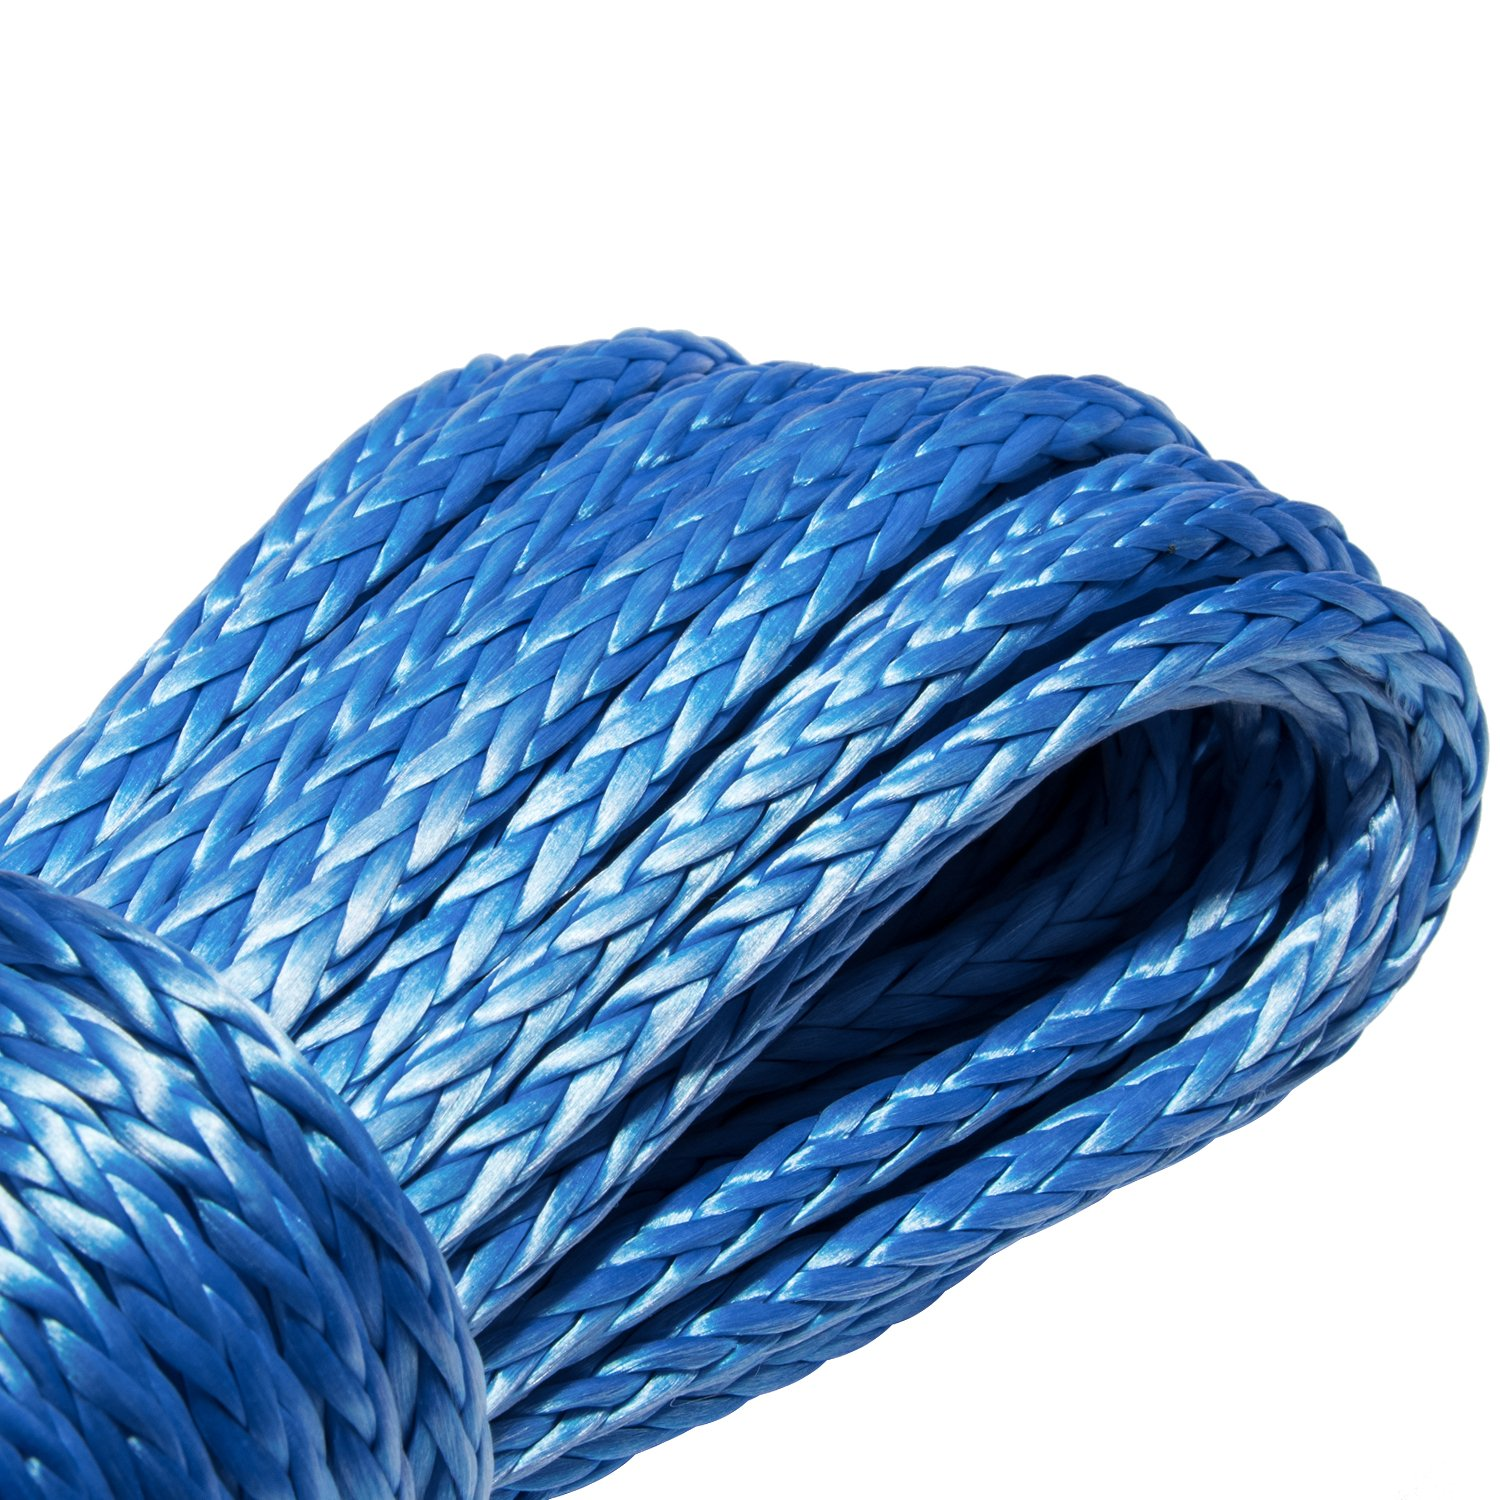 Synthetic Winch Rope 7500+LBs 50x1//4 Winch cable with Sheath for SUV ATV UTV Winches Truck Boat Ramsey Car Blue